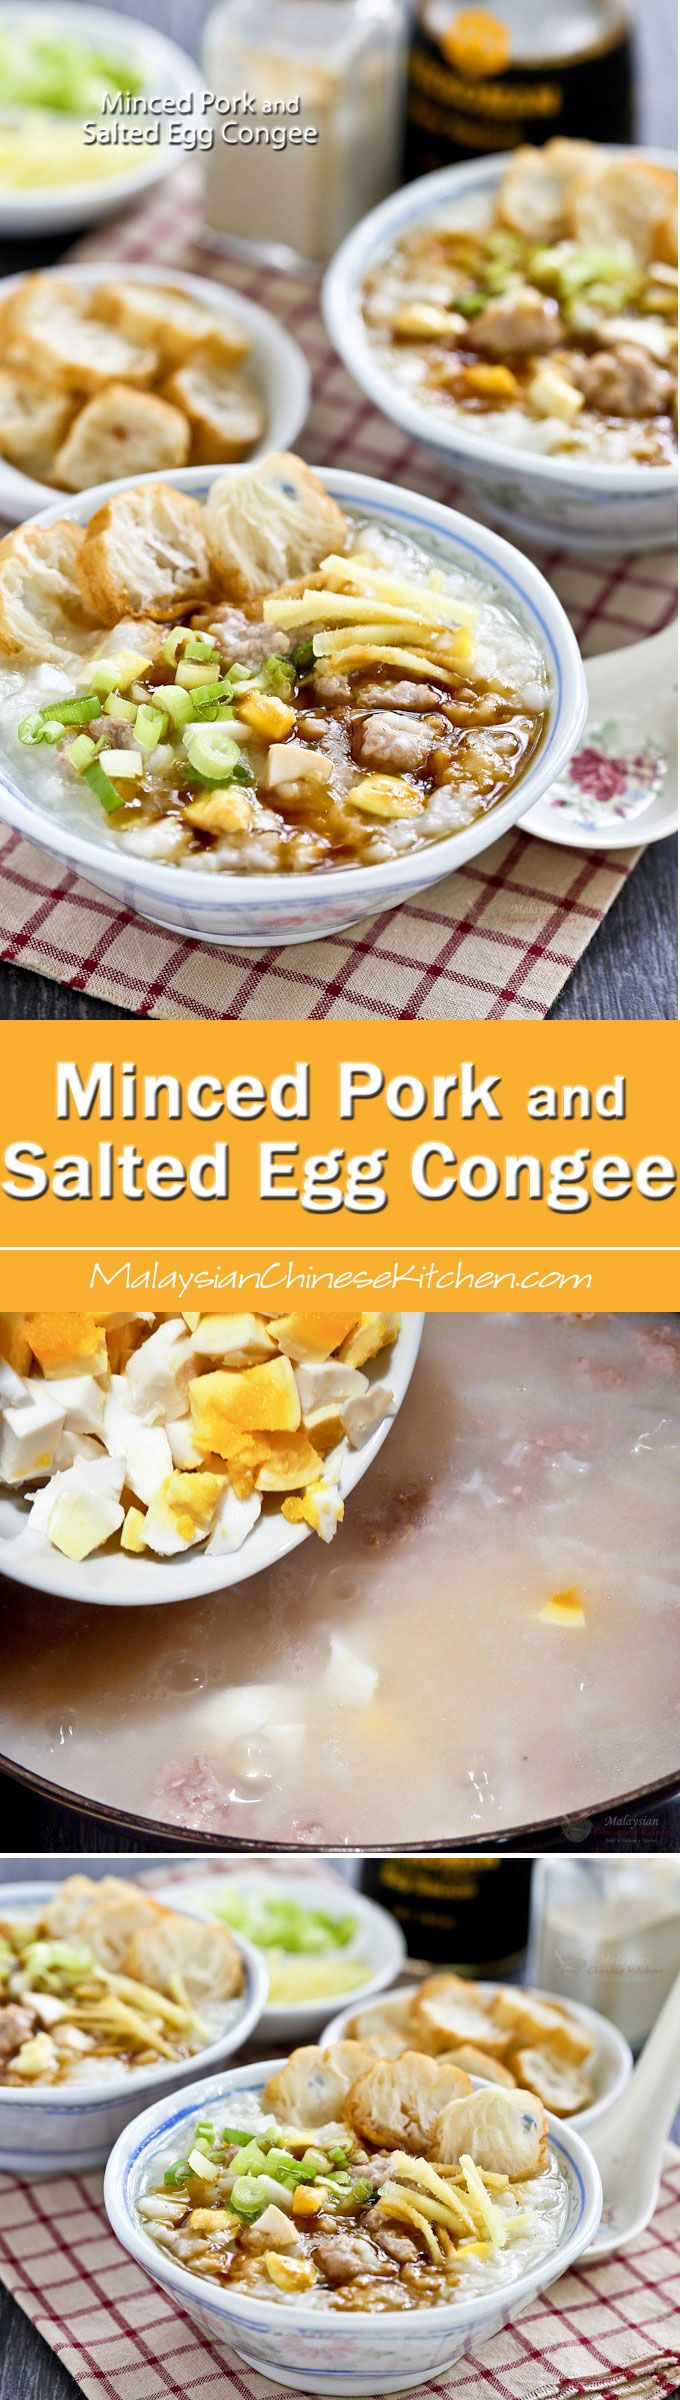 95 best malaysian chinese kitchen images on pinterest asian food this easy to prepare minced pork and salted egg congee is comfort food for the soul forumfinder Choice Image